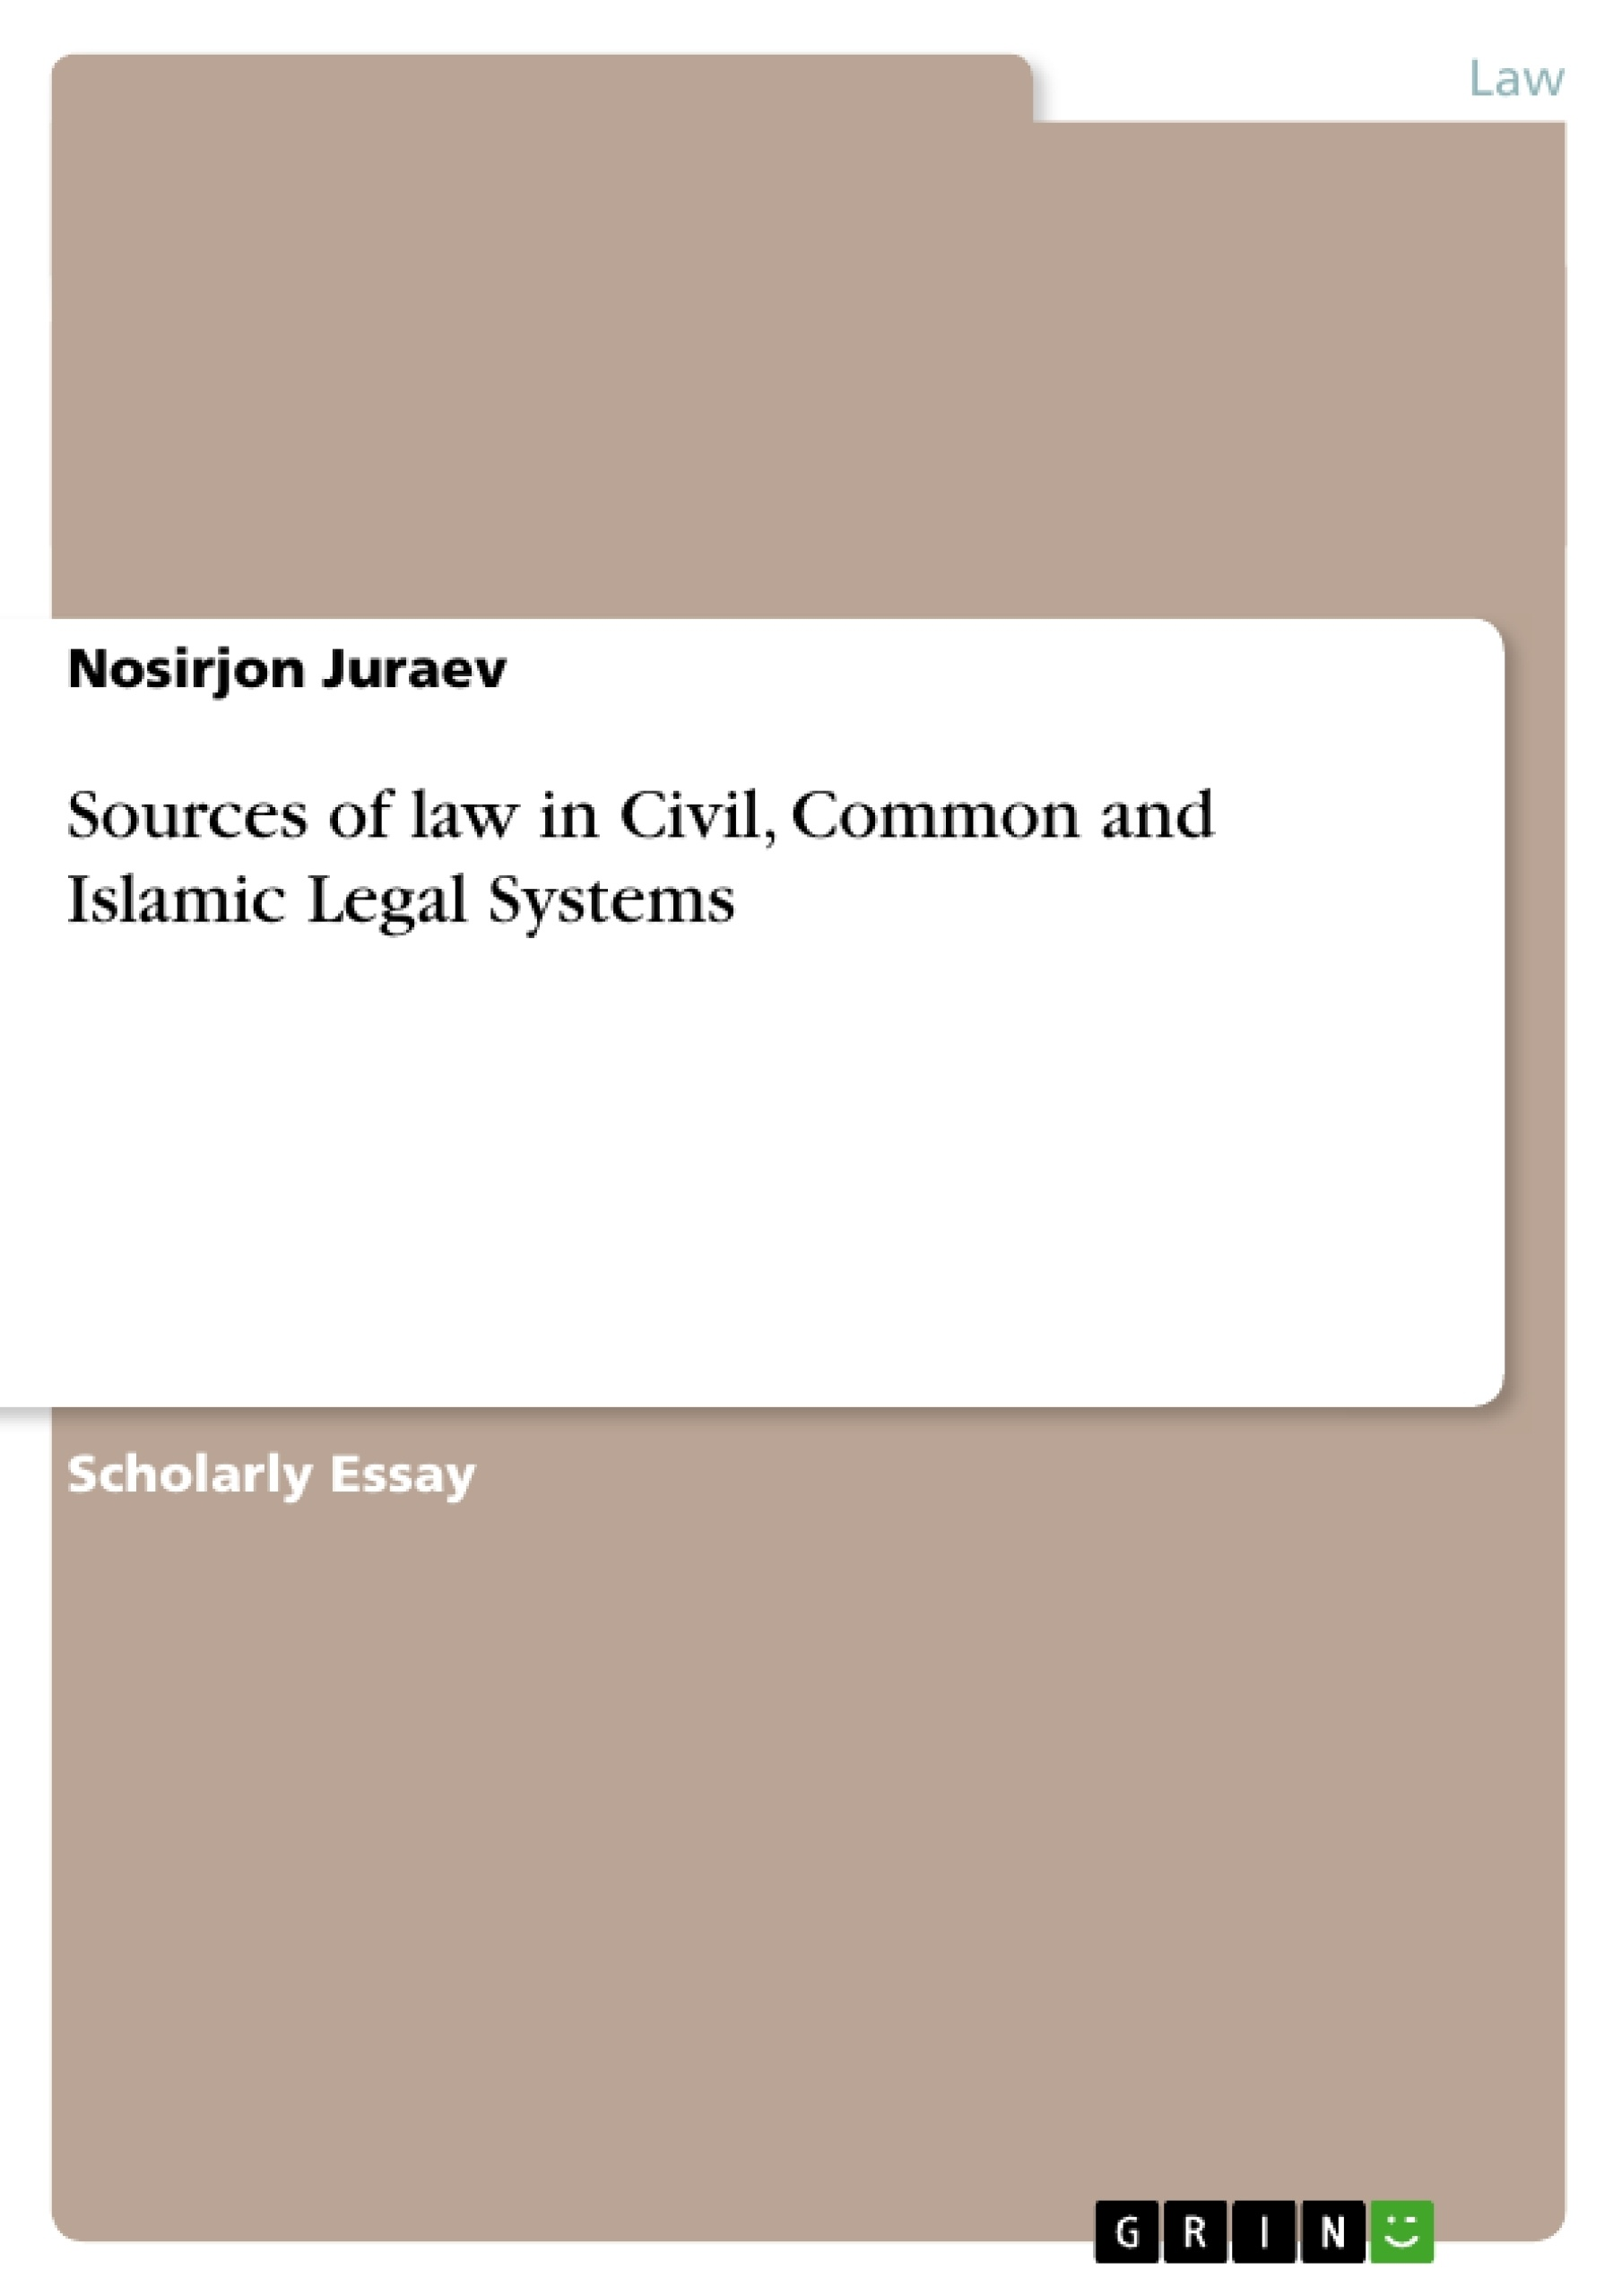 civil law essay sources of law in civil common and islamic legal  sources of law in civil common and islamic legal systems sources of law in civil common civil liberties essay